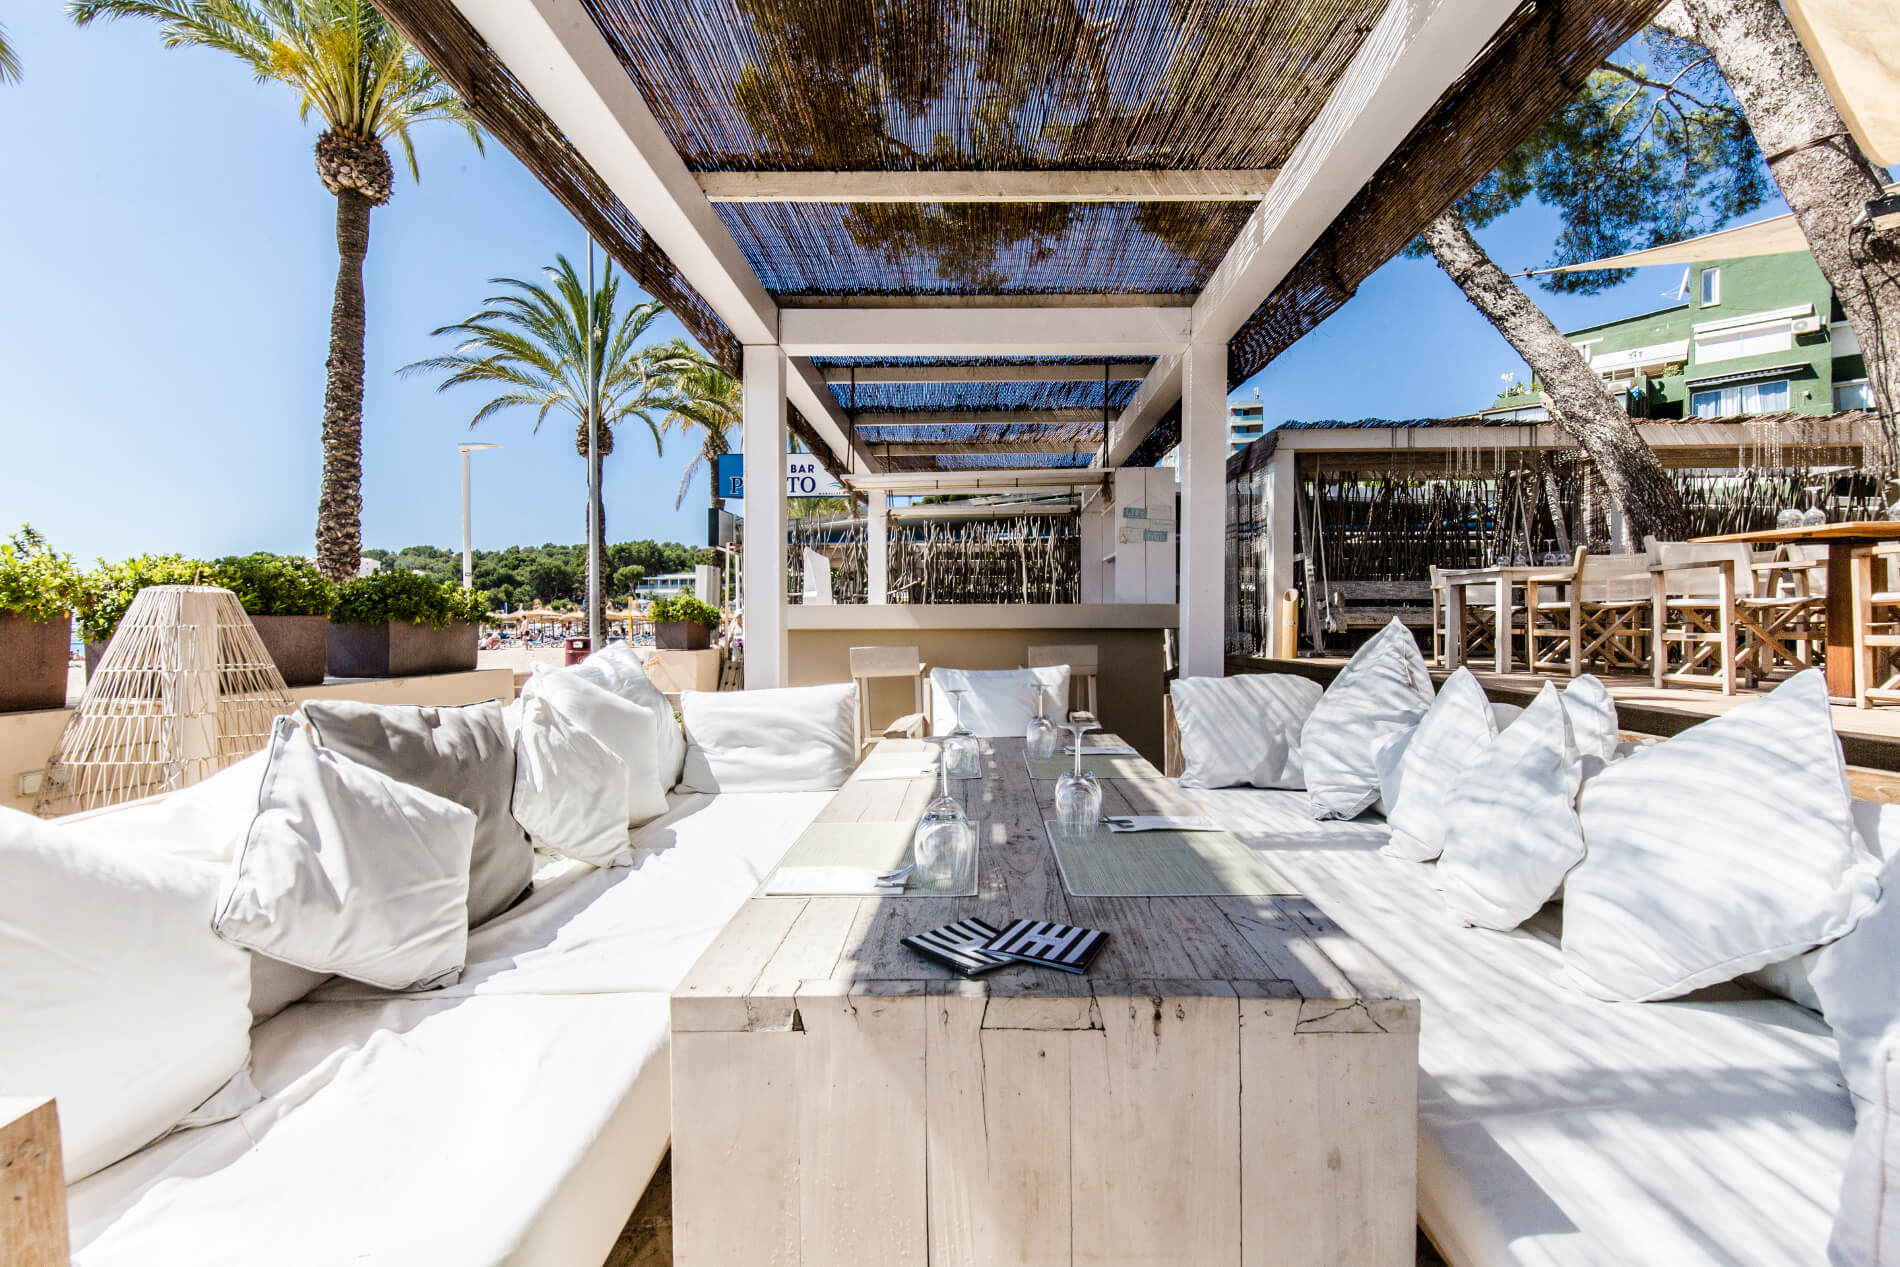 Exklusiver Beach Club in Magaluf Restaurant Sonnenliegen